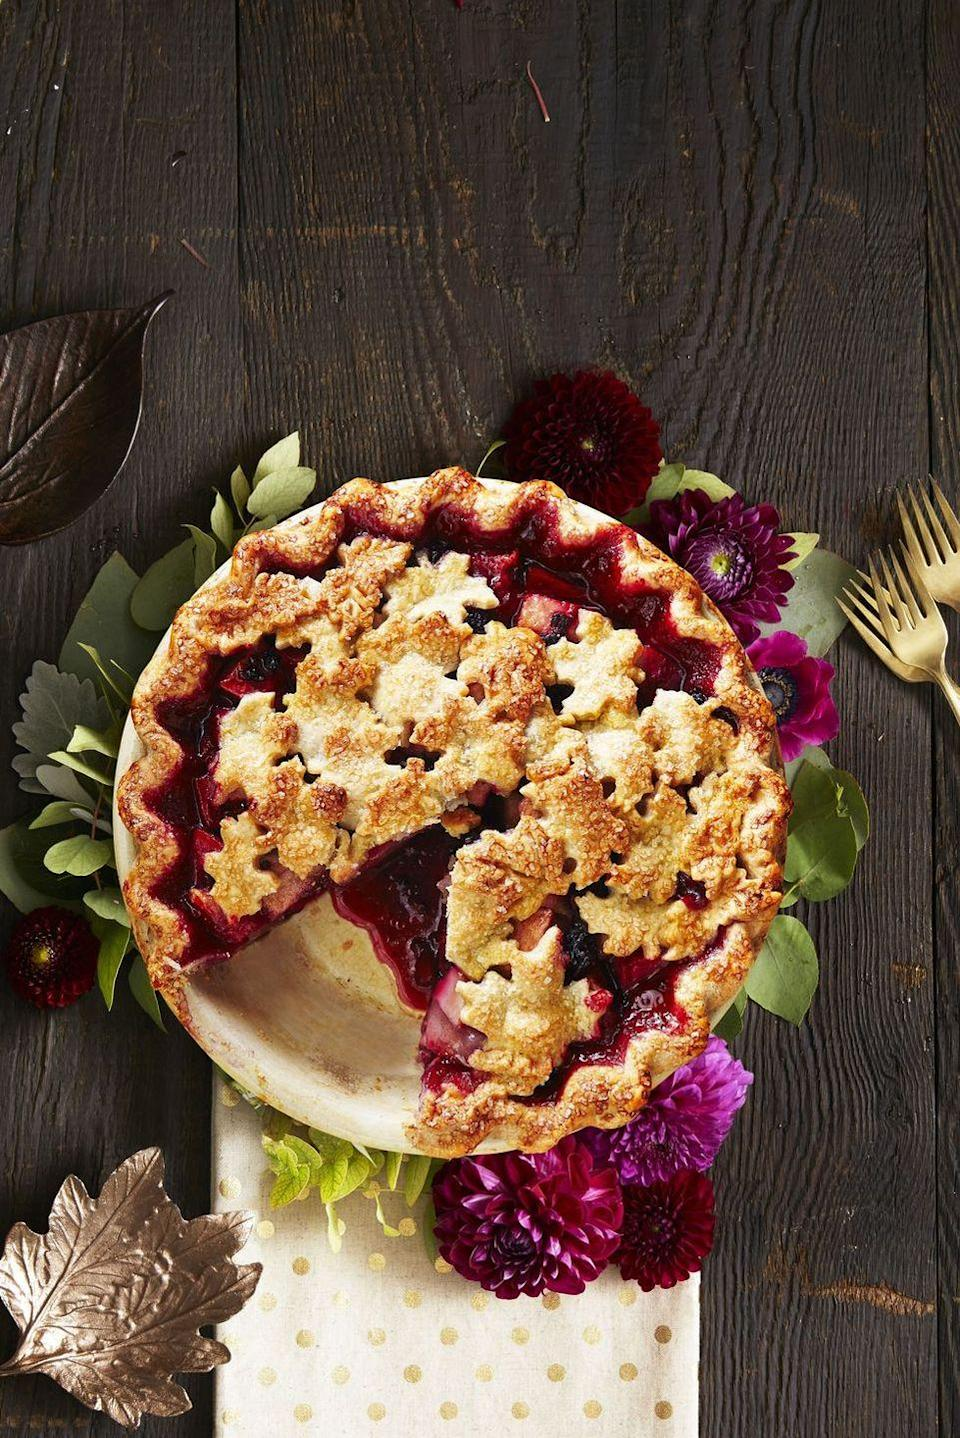 "<p>Why should apple pie recipes and pumpkin pie recipes get all the fall attention? This autumn dessert mixes creamy Bartlett pears with juicy blackberries for the perfect pie.</p><p><em><a href=""https://www.goodhousekeeping.com/food-recipes/dessert/a34579/harvest-pear-blackberry-pie/"" rel=""nofollow noopener"" target=""_blank"" data-ylk=""slk:Get the recipe for Harvest Pear-Blackberry Pie »"" class=""link rapid-noclick-resp"">Get the recipe for Harvest Pear-Blackberry Pie »</a></em></p>"